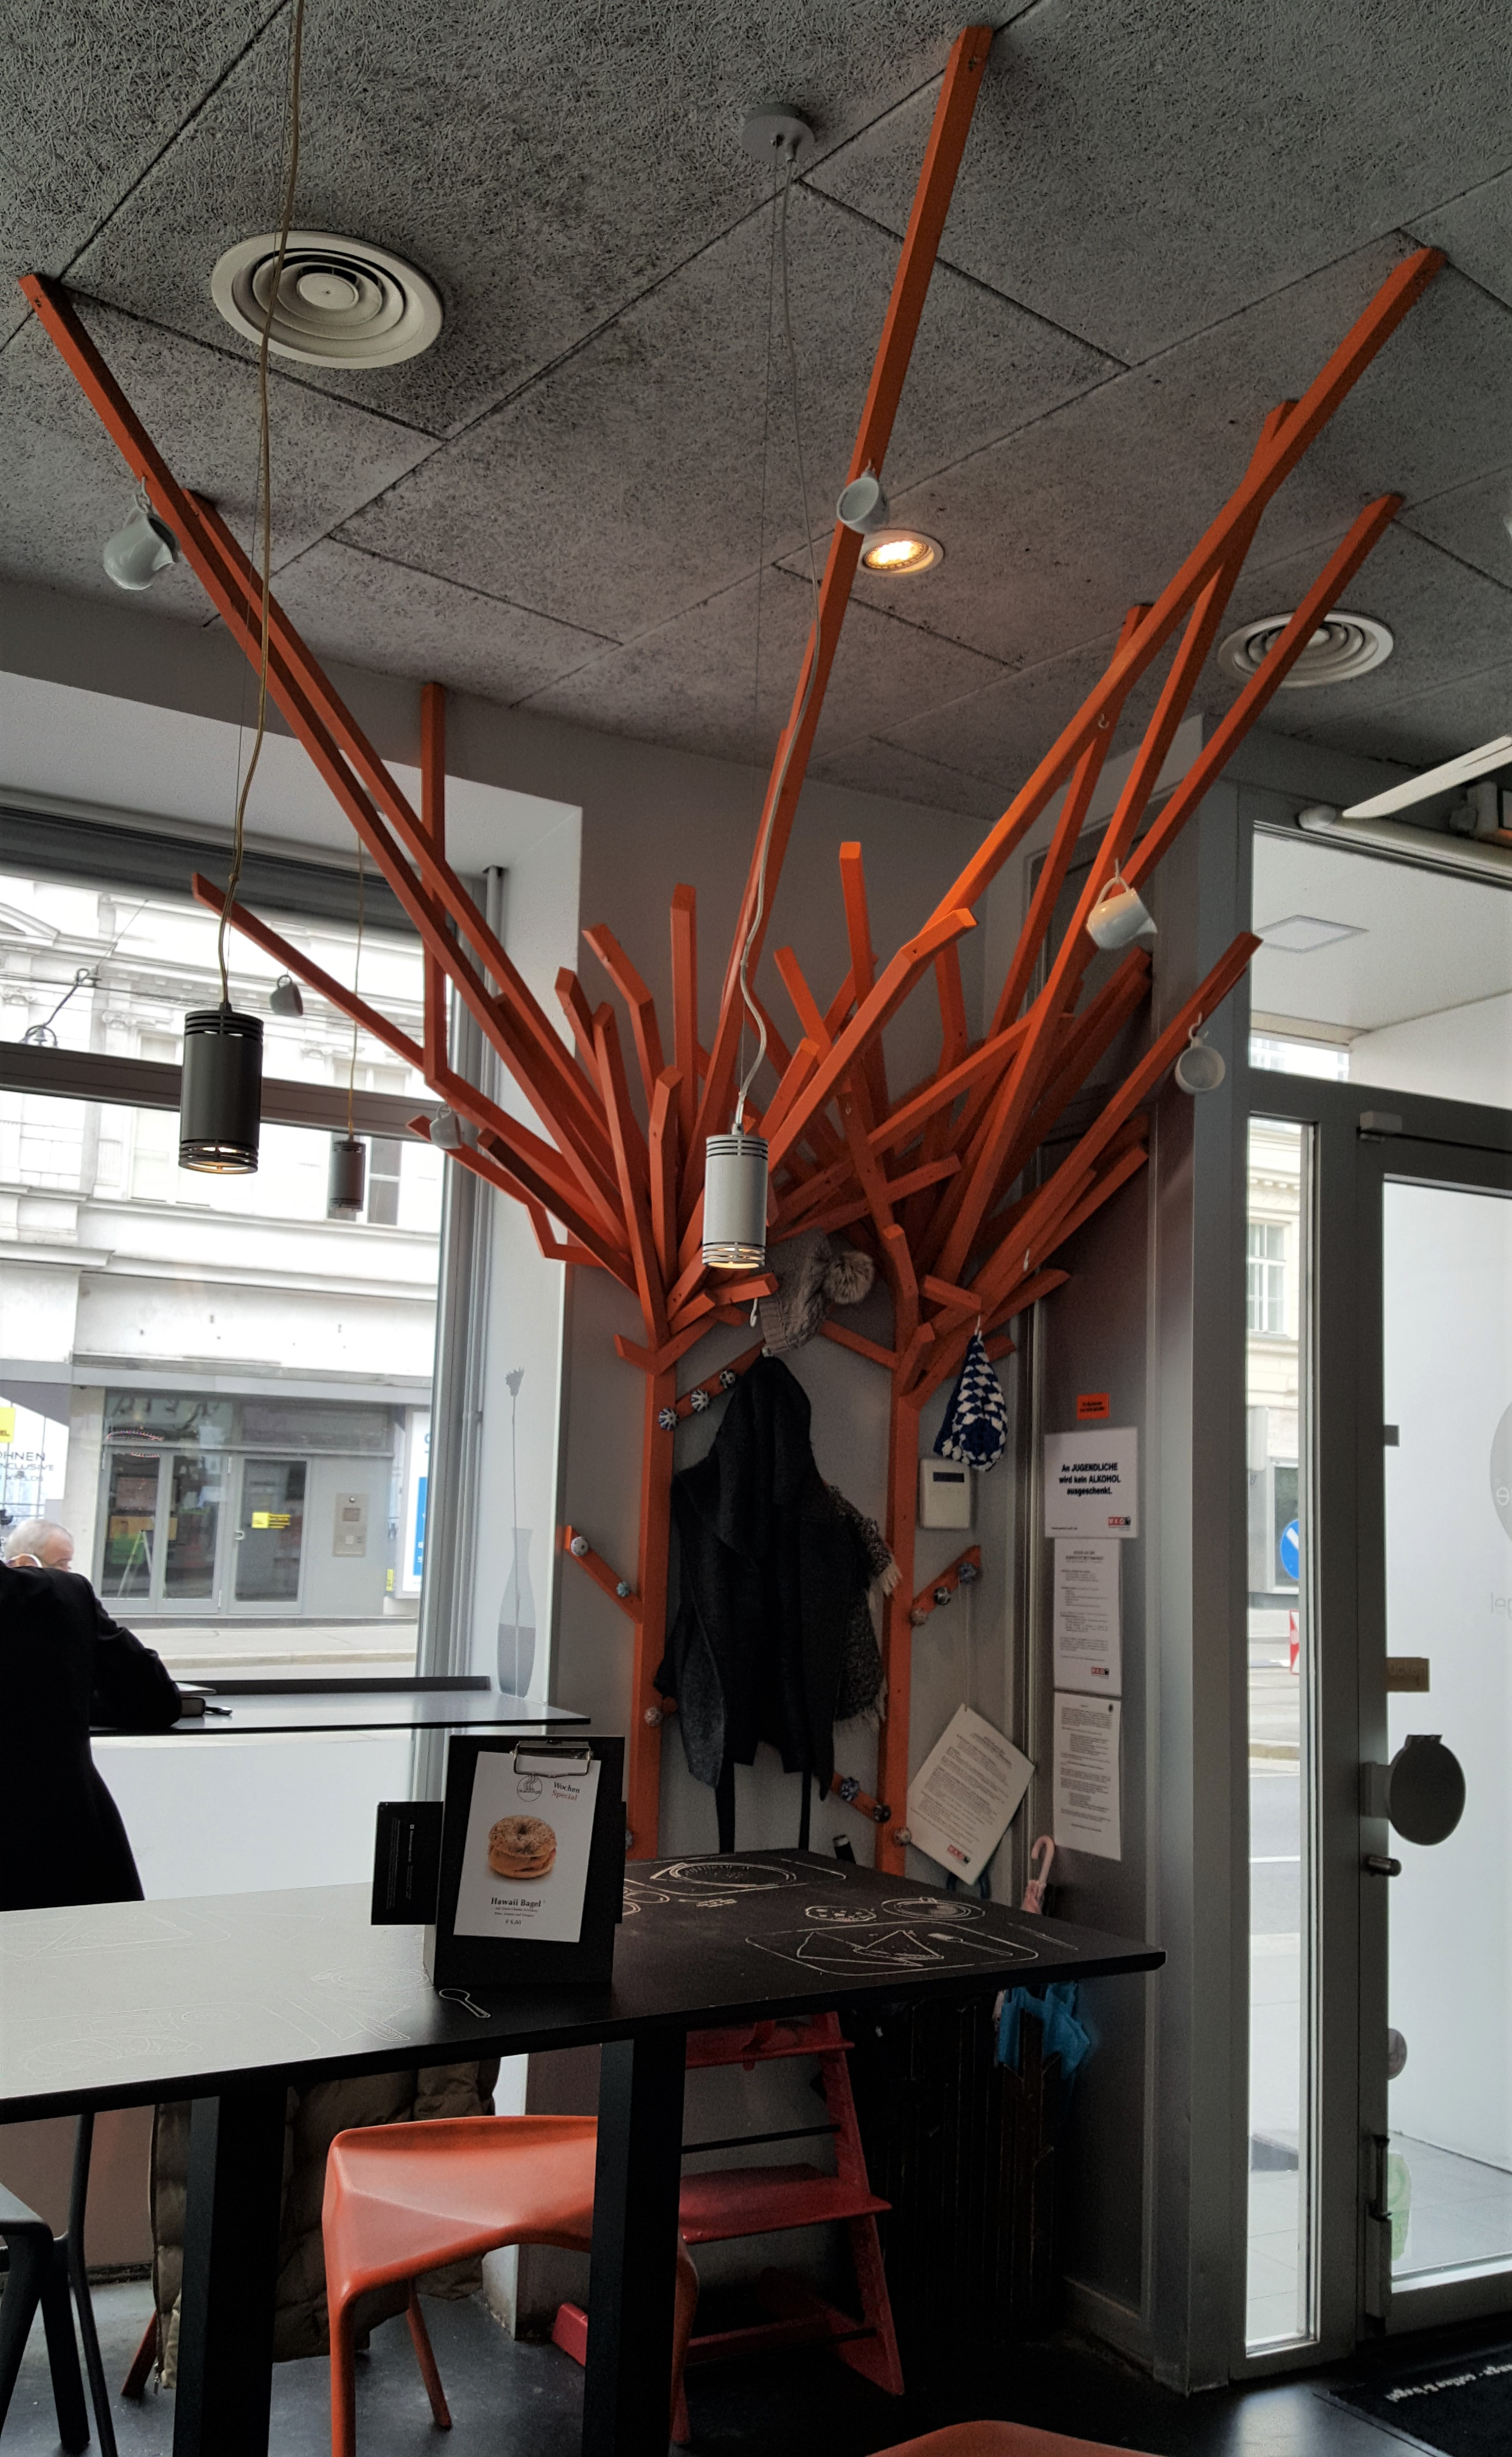 Coats, coffee cups, bags? There's a tree for that at Blue Orange.